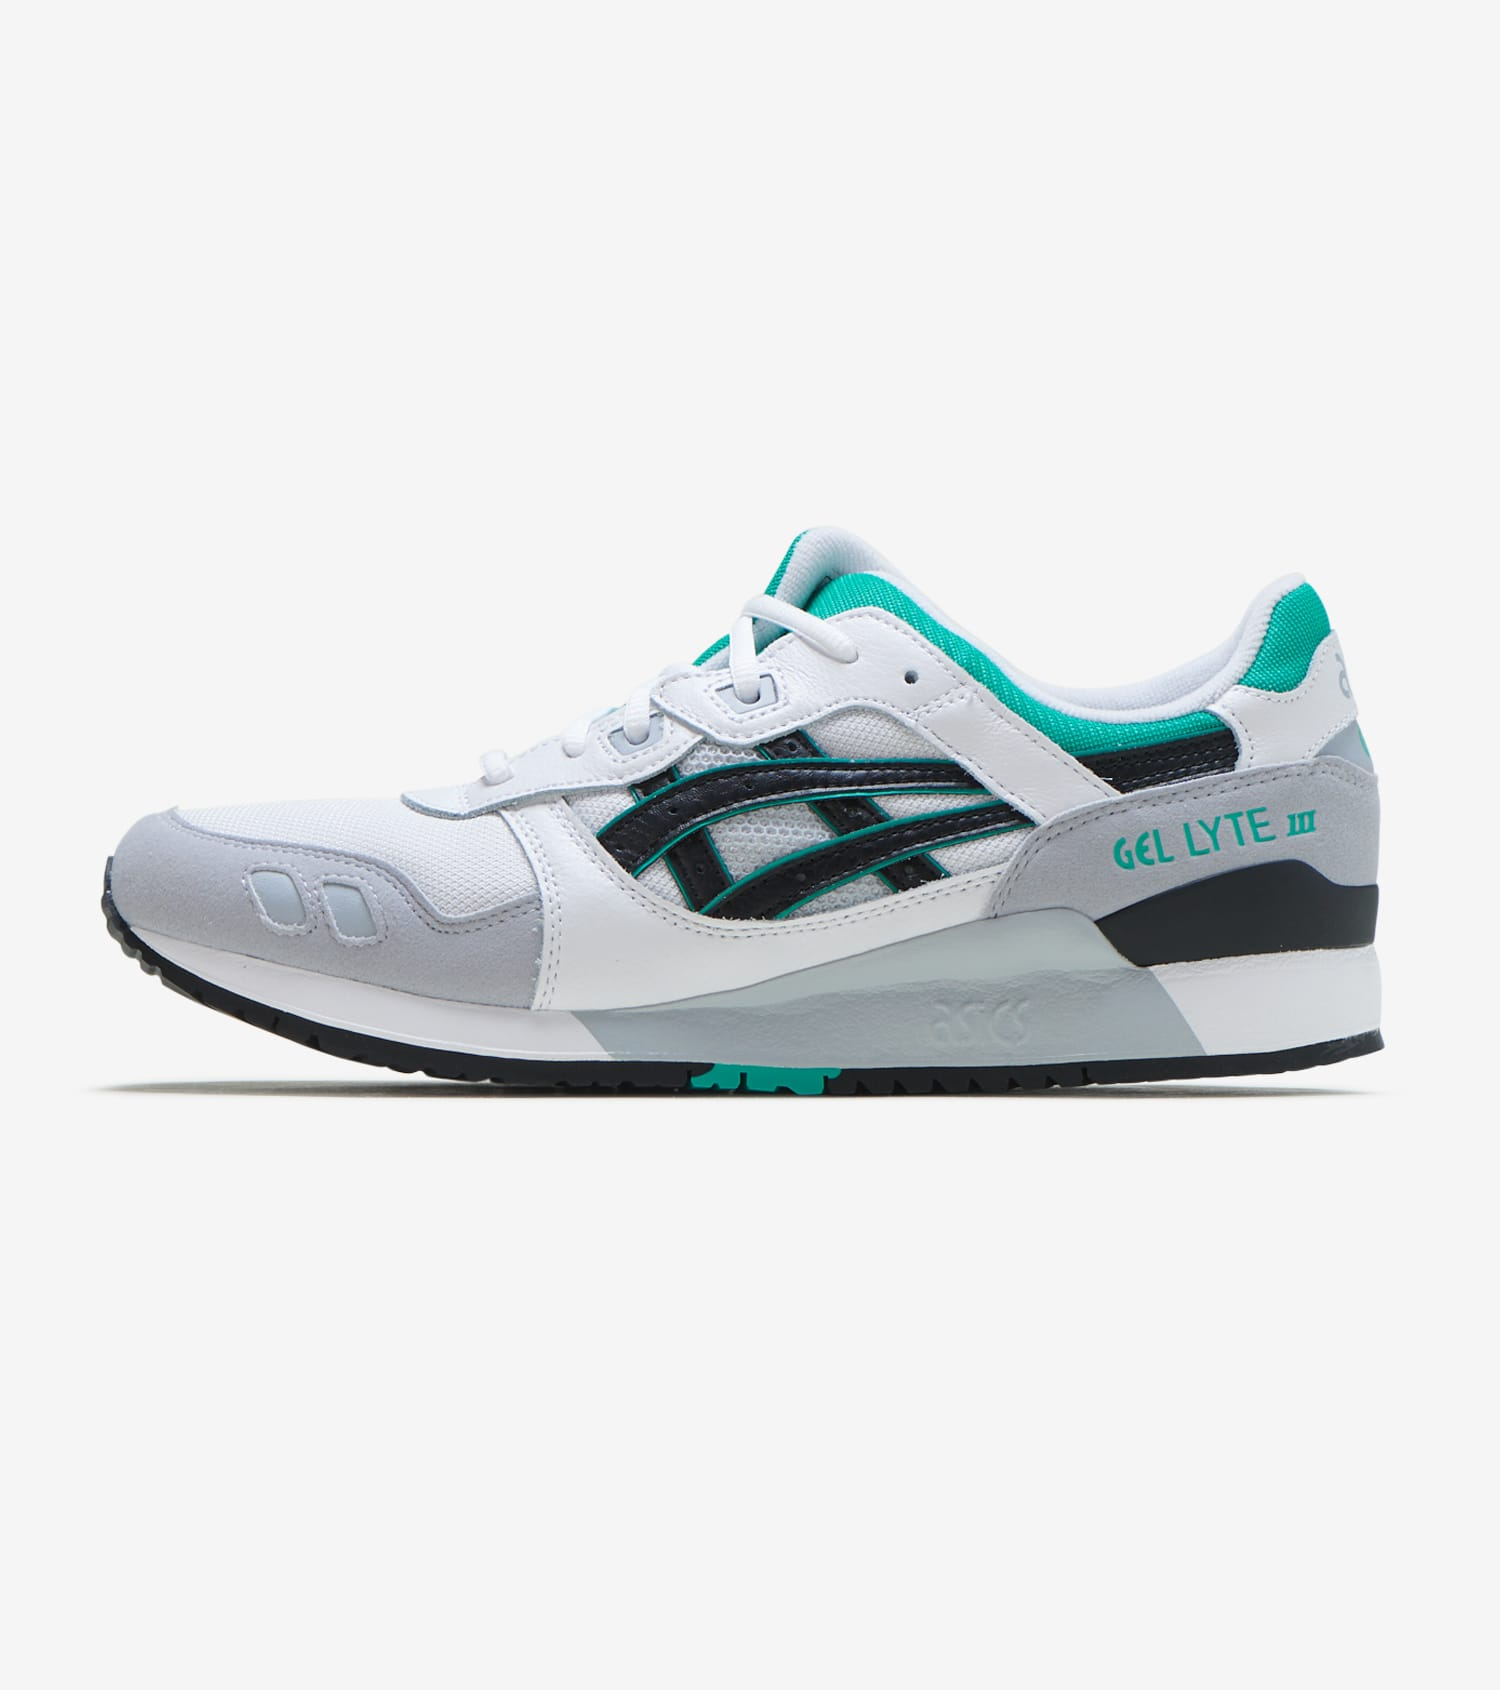 the best attitude a5a72 0bccf Gel Lyte III